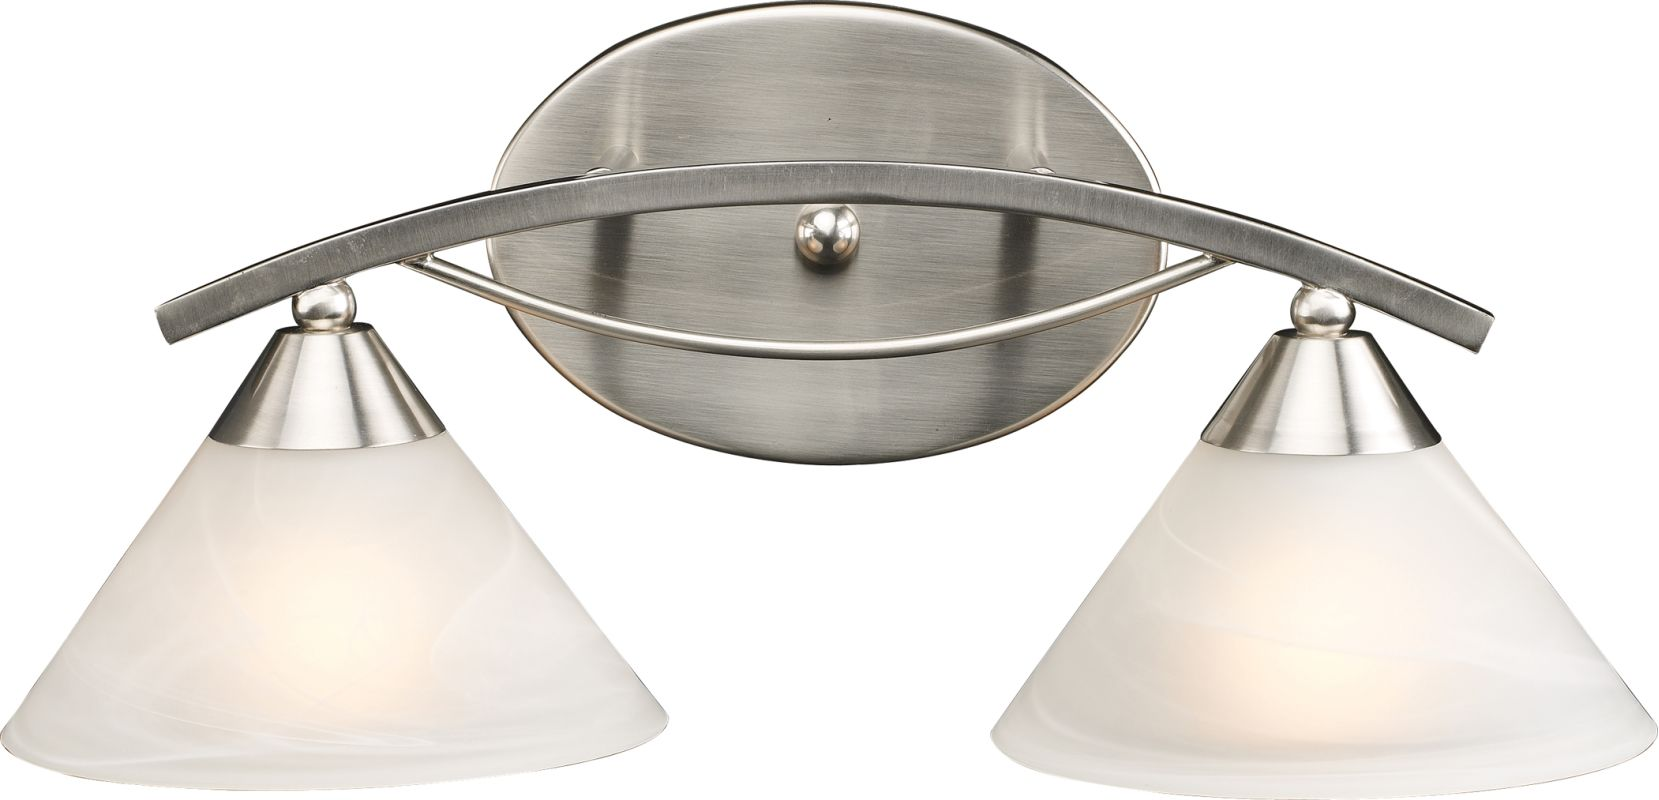 ELK Lighting 7631/2 Elysburg 2 Light Wall Sconce Satin Nickel Indoor